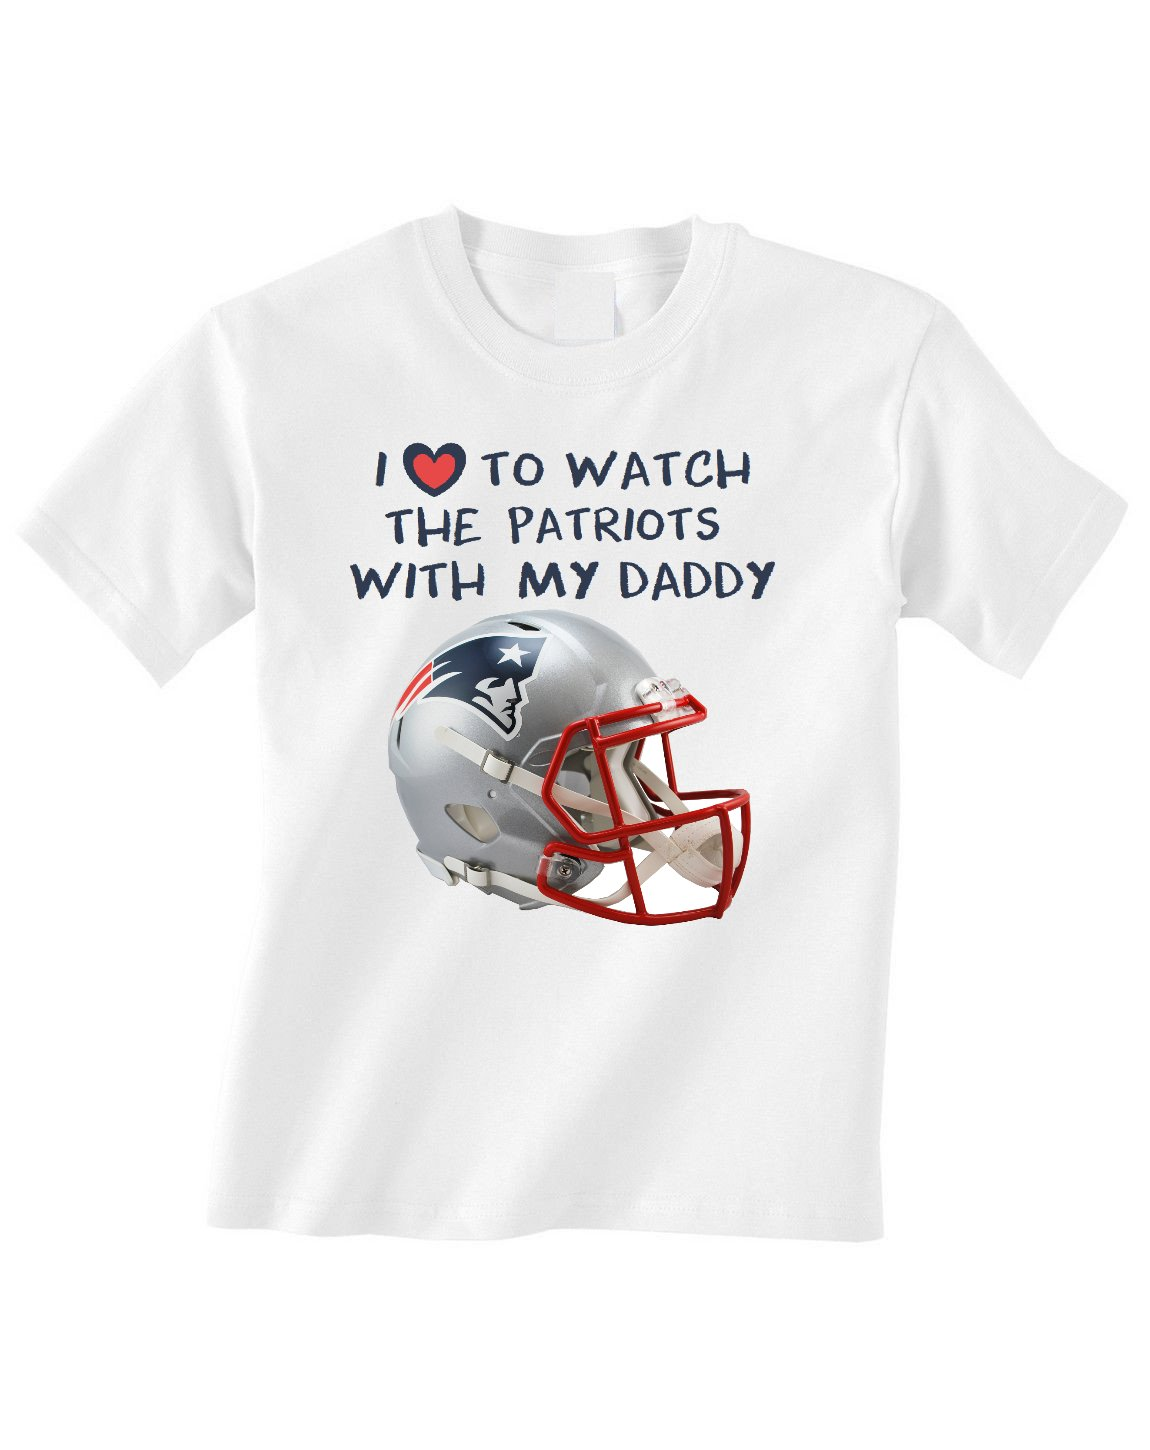 96961c9b New England Patriots Tshirt Love To Watch With Daddy